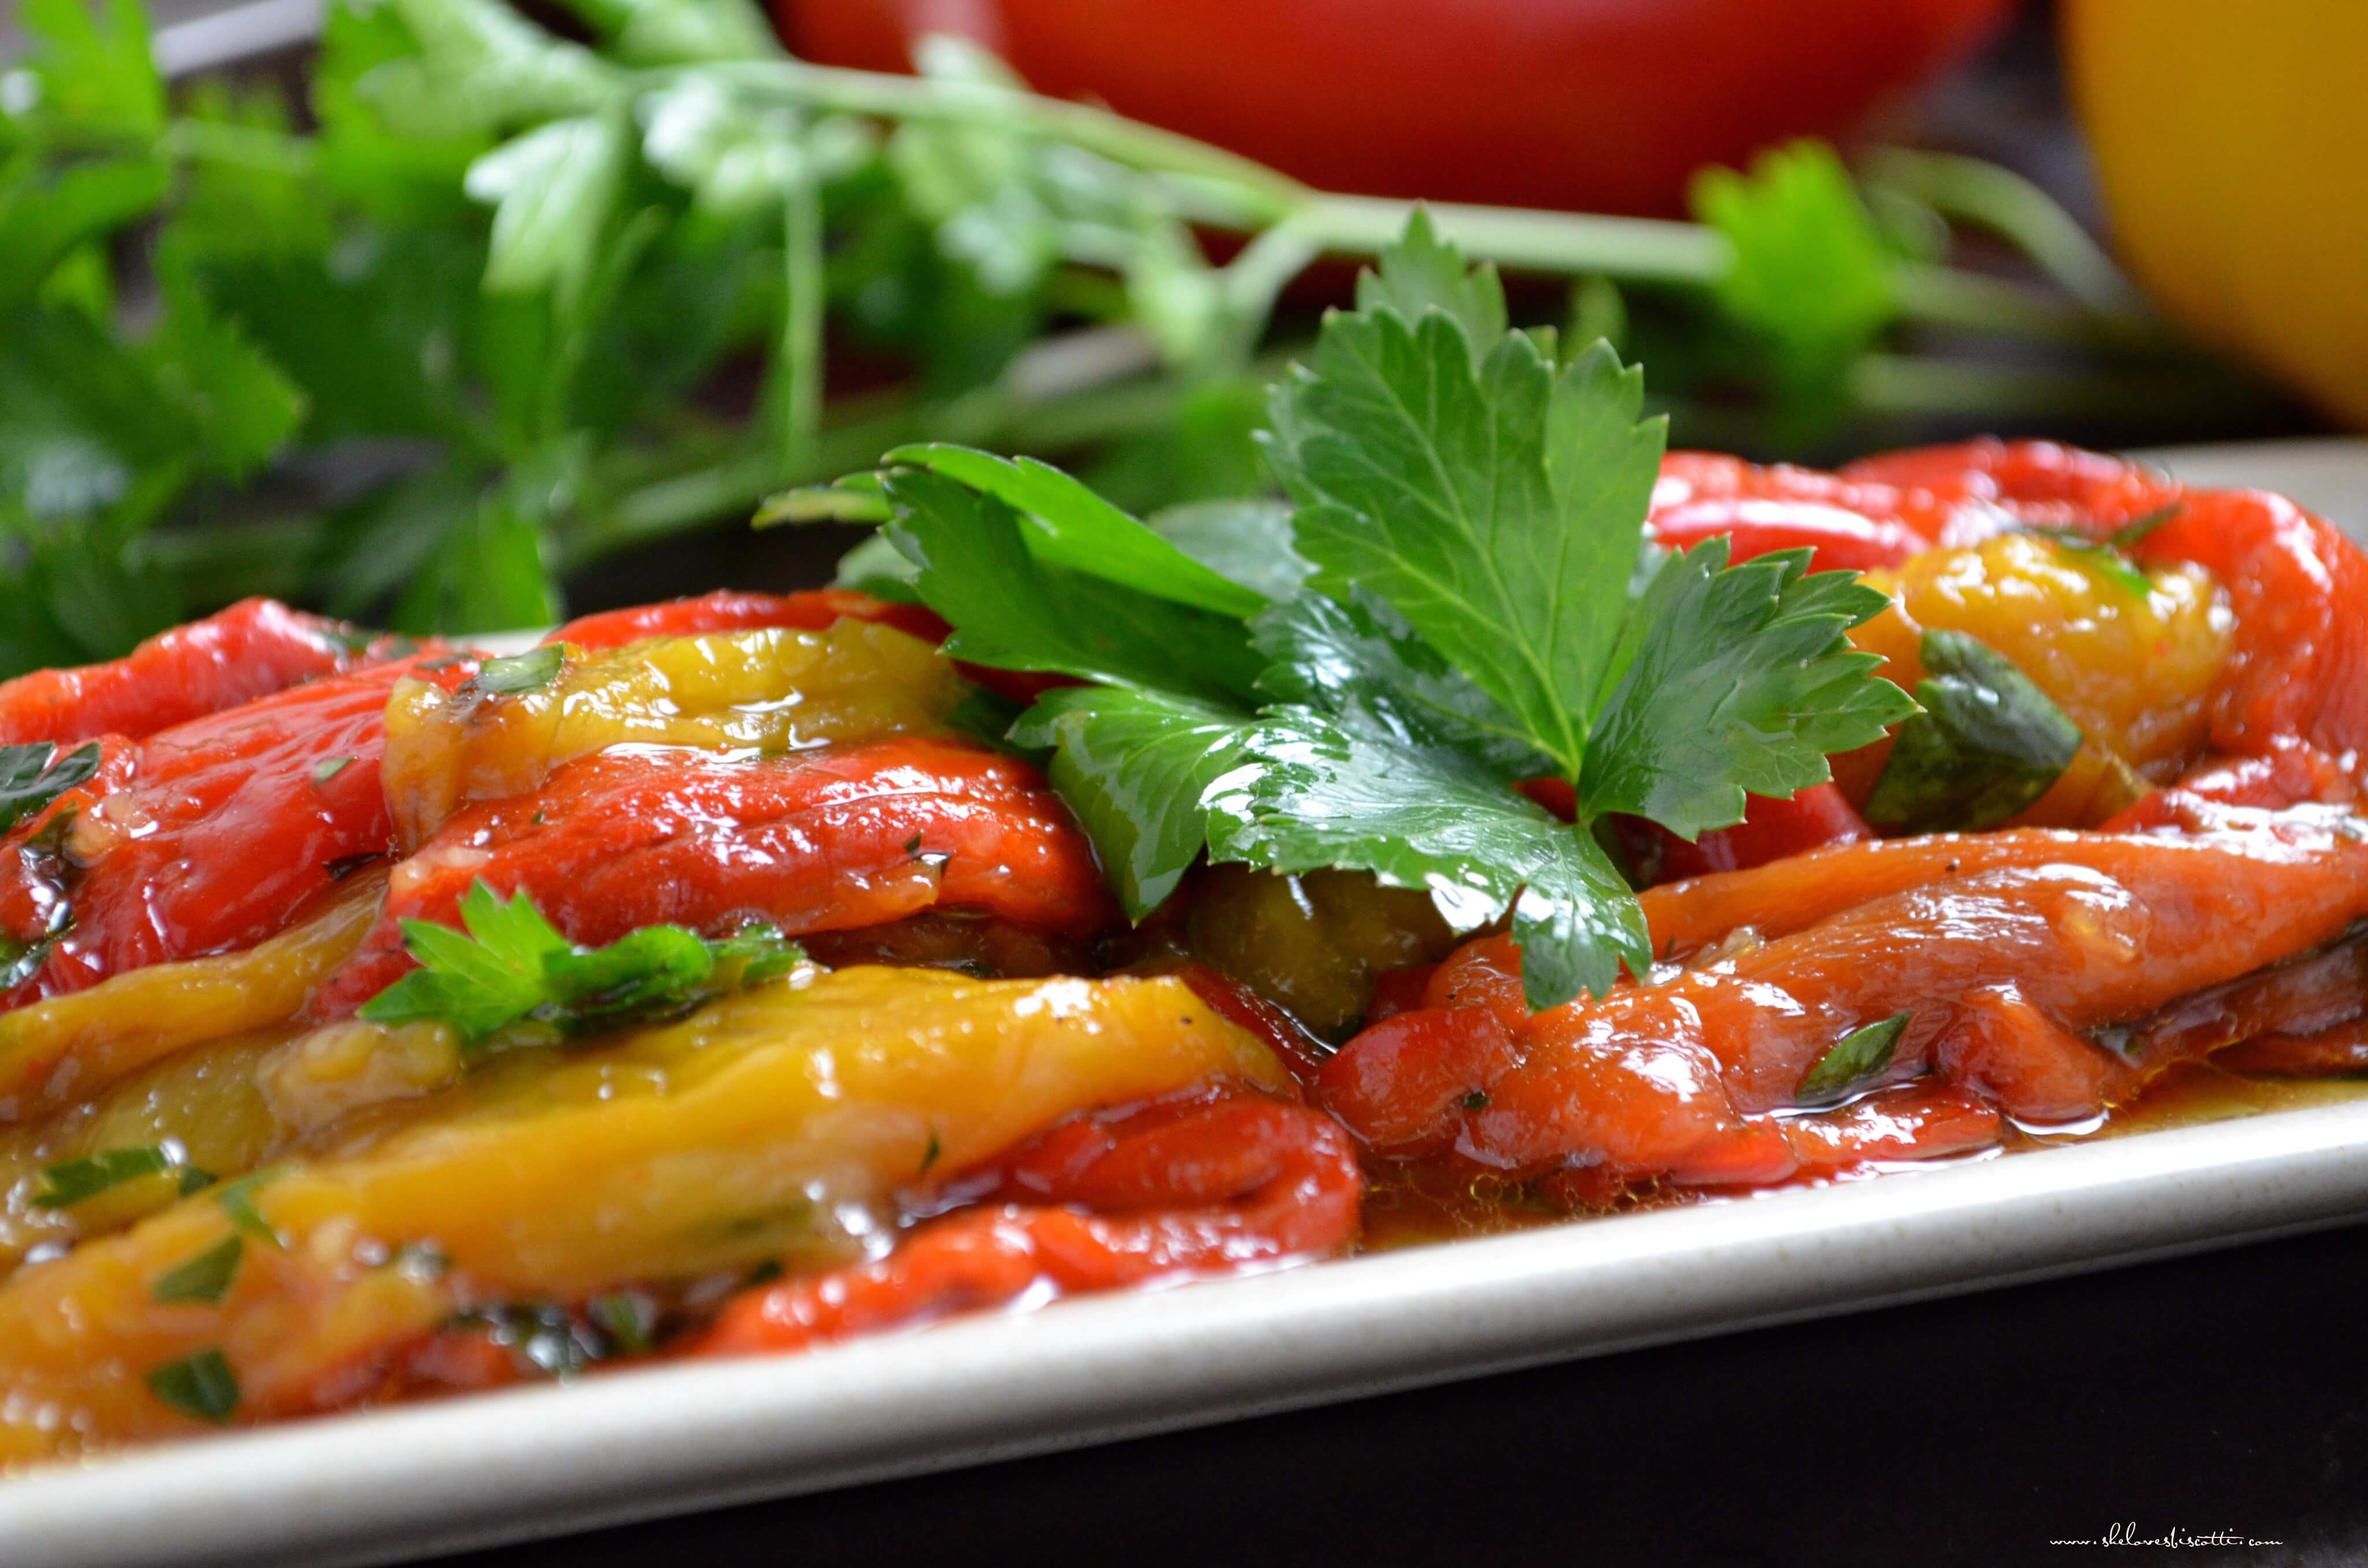 ... bell peppers marinated roasted red bell peppers recipe key ingredient